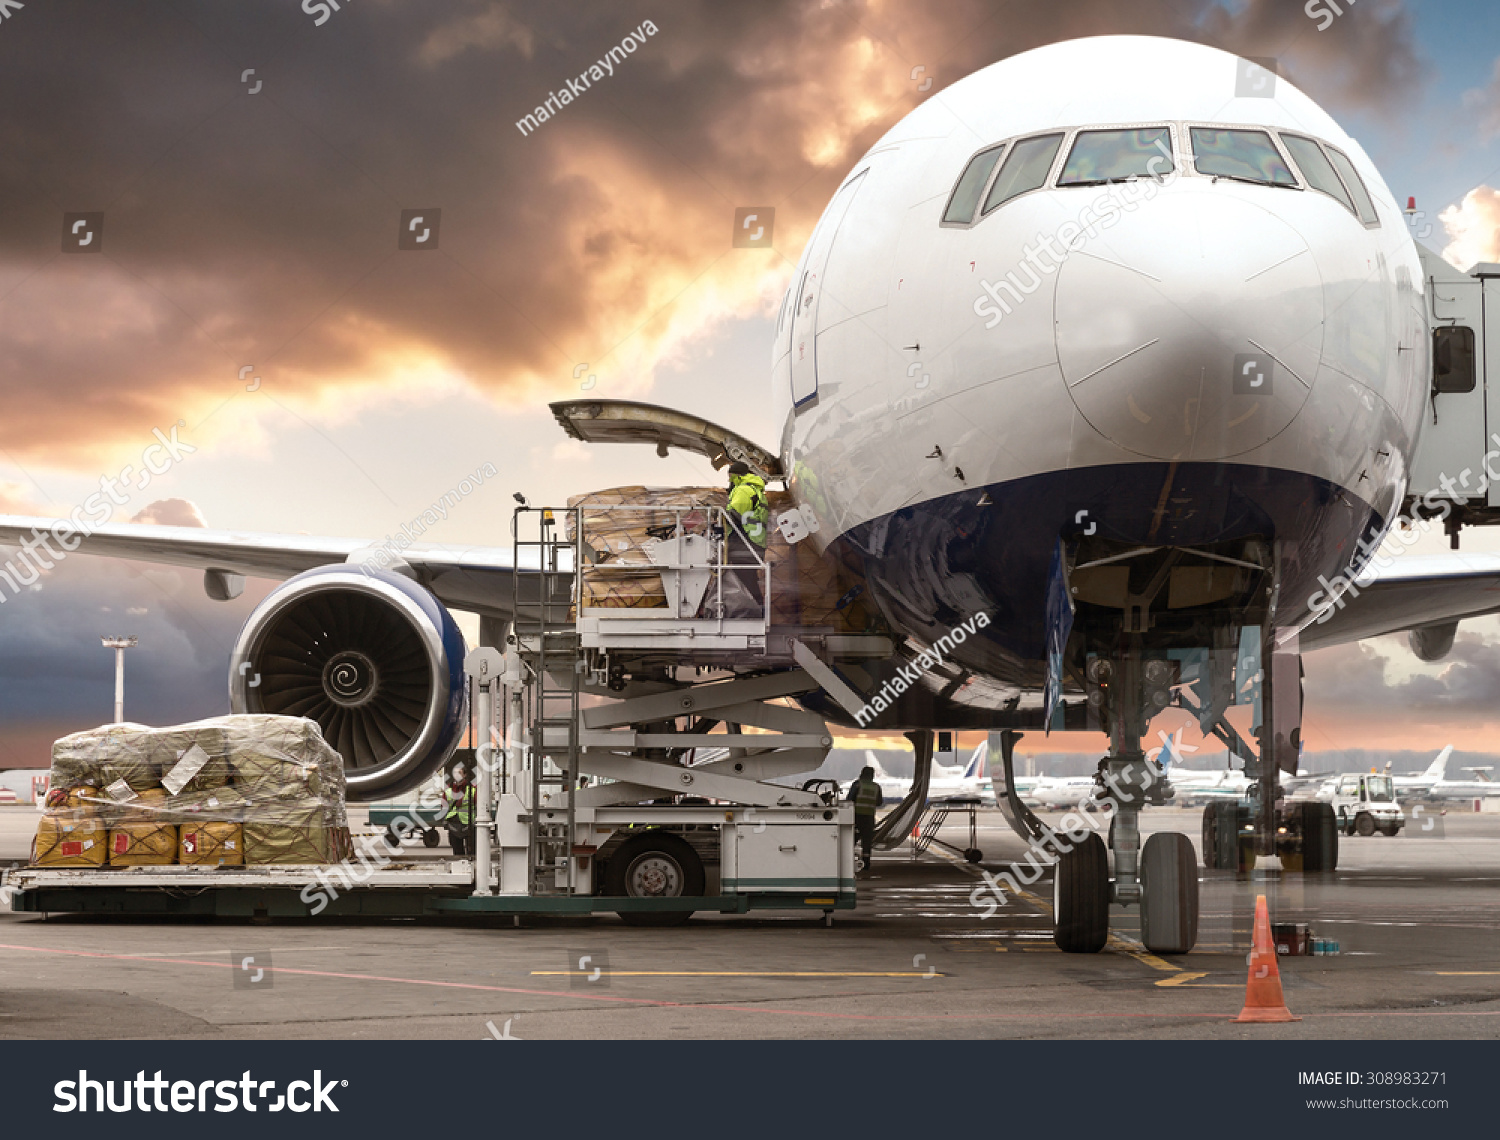 stock-photo-loading-cargo-on-the-plane-in-airport-view-through-window-308983271